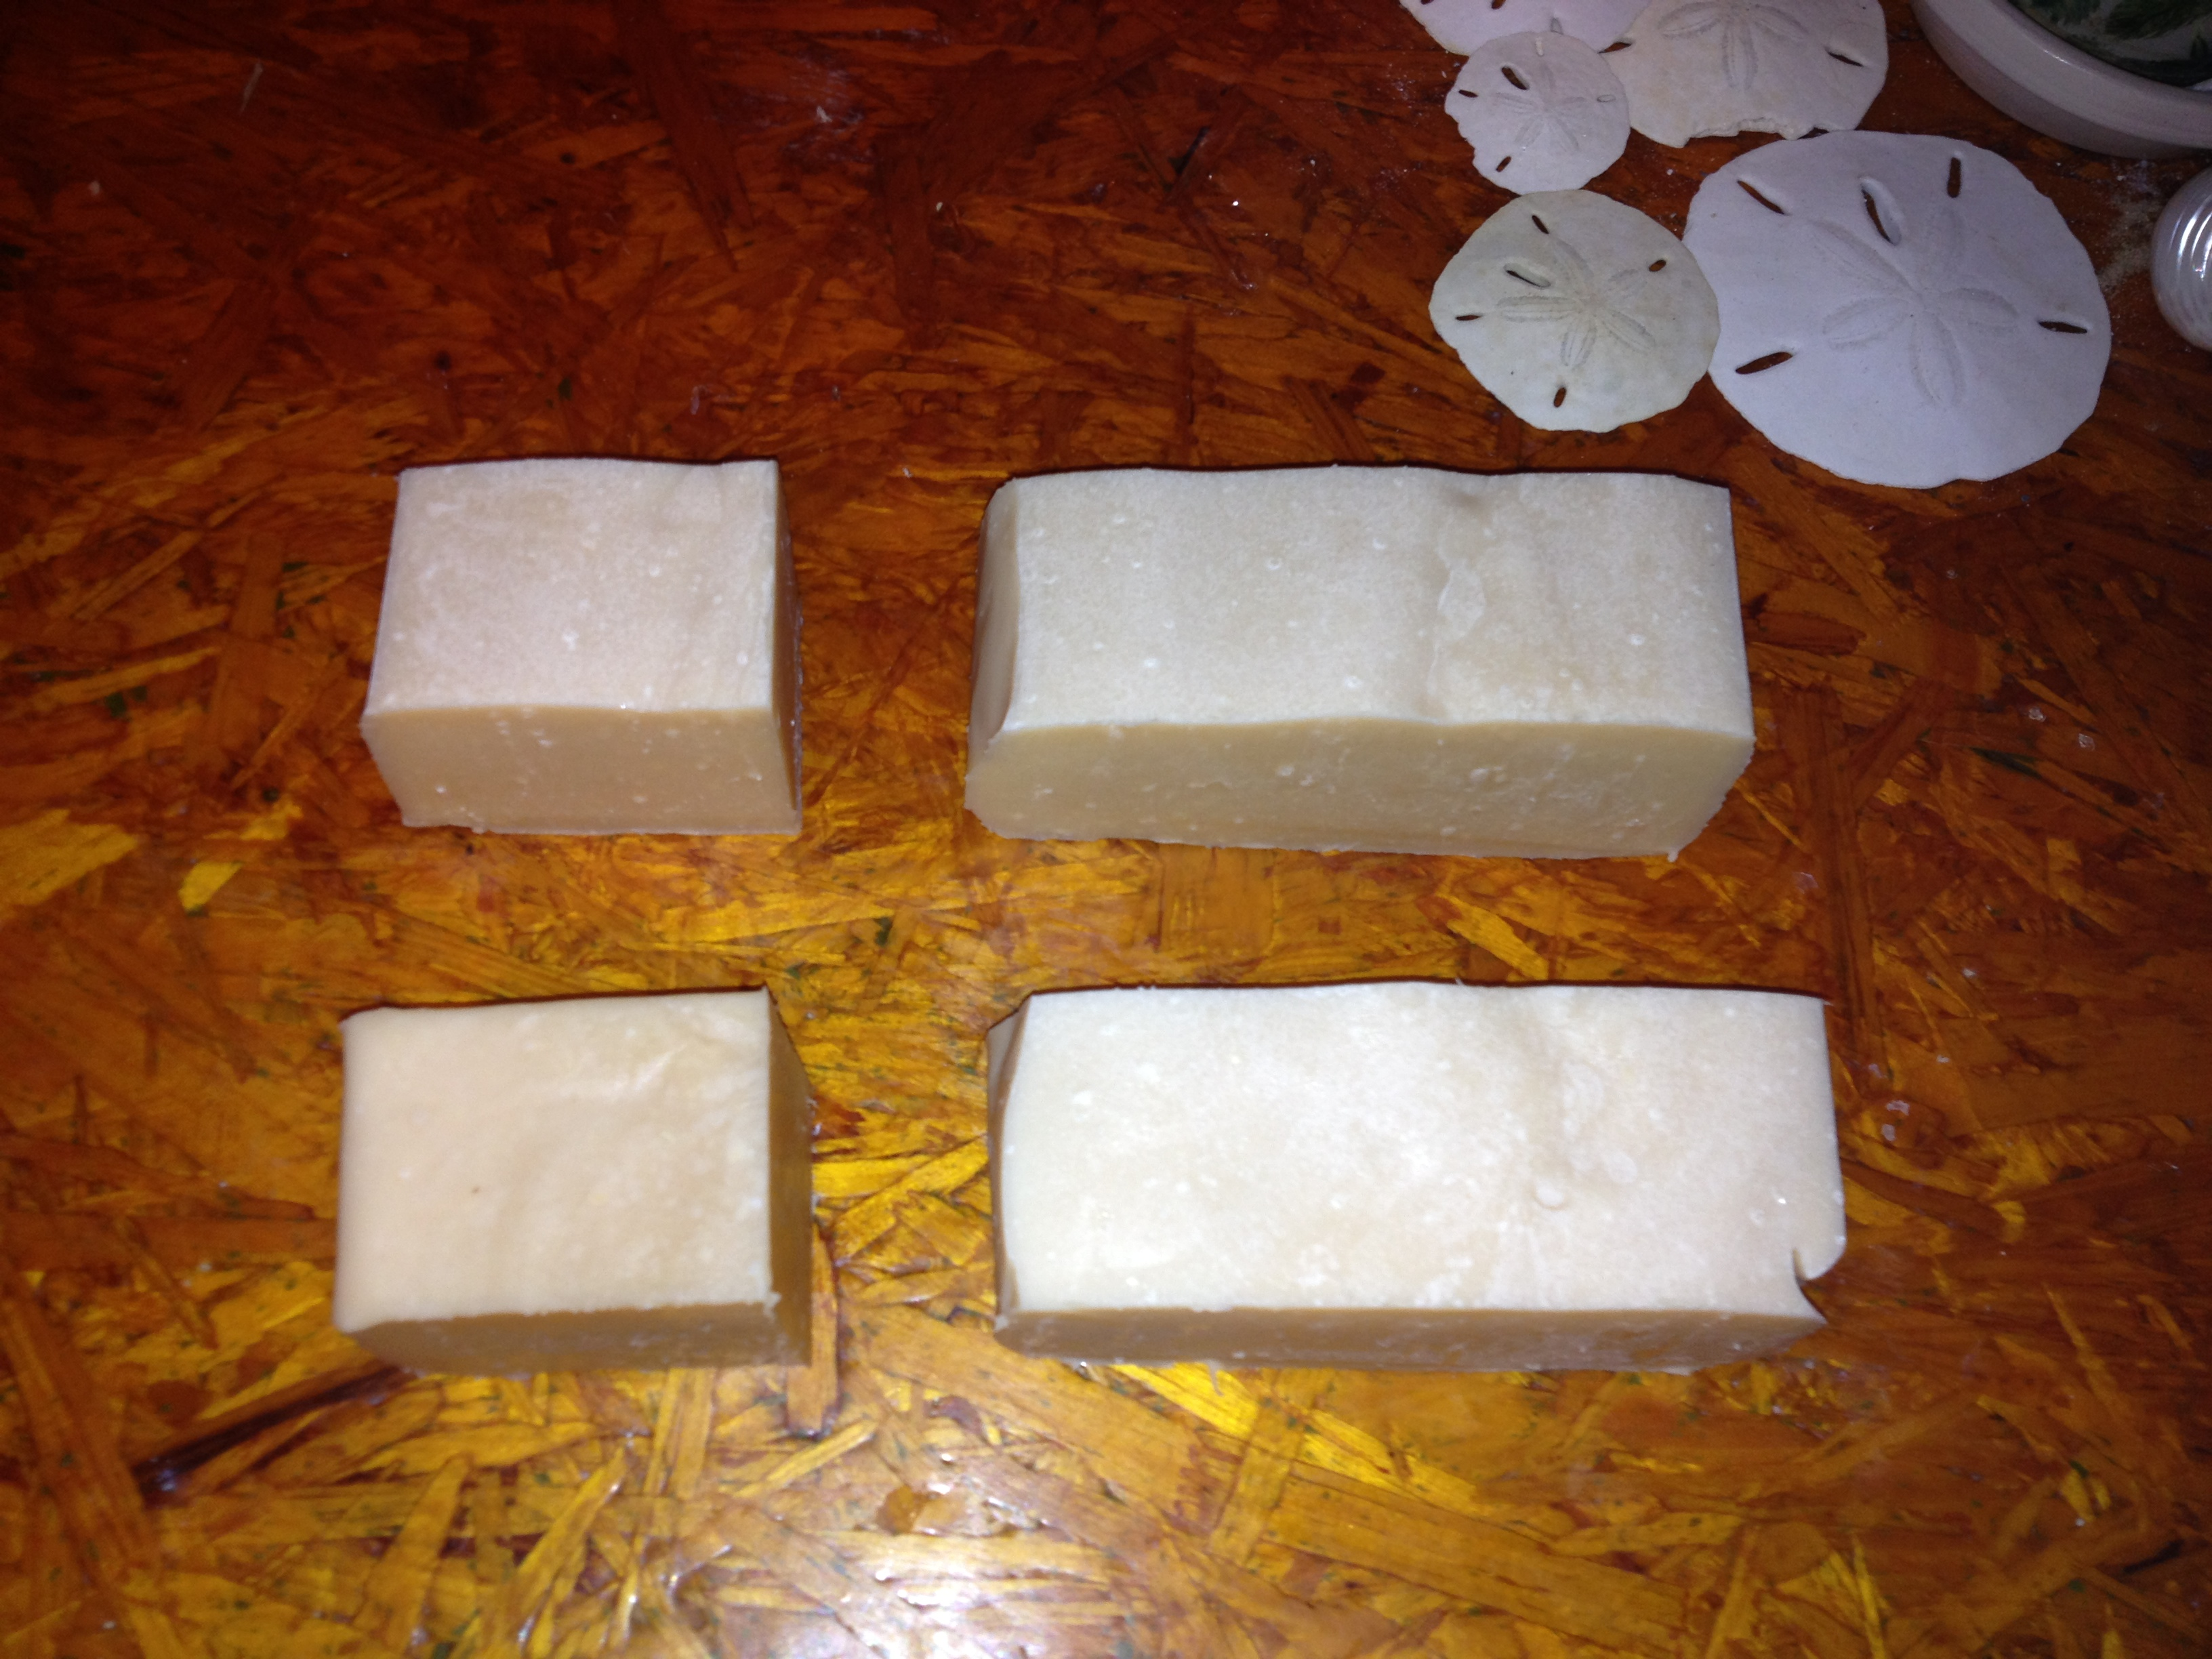 cutting handmade bars of soap at Fields Place